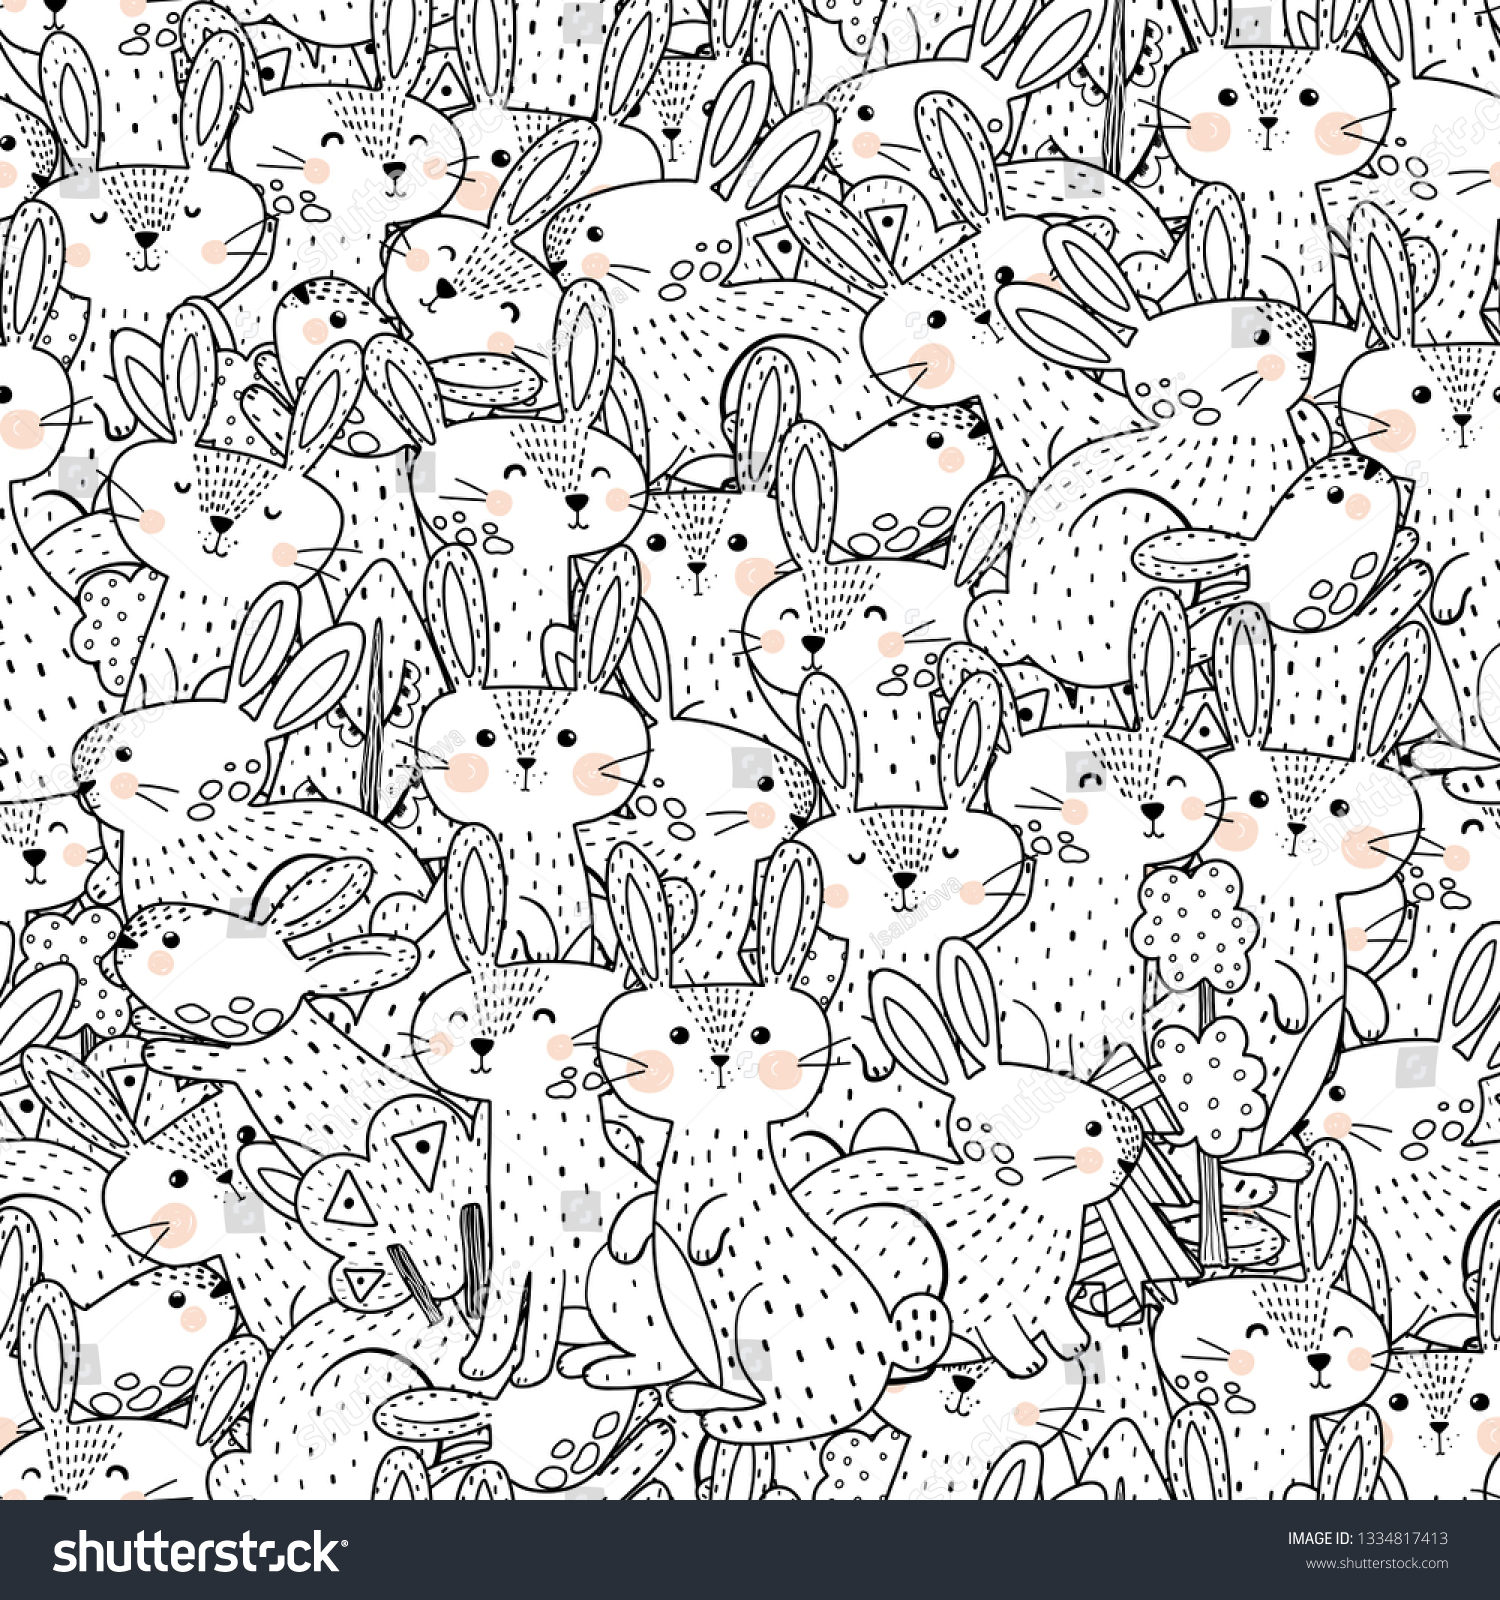 stock vector funny rabbits black and white seamless pattern great for coloring page prints backgrounds